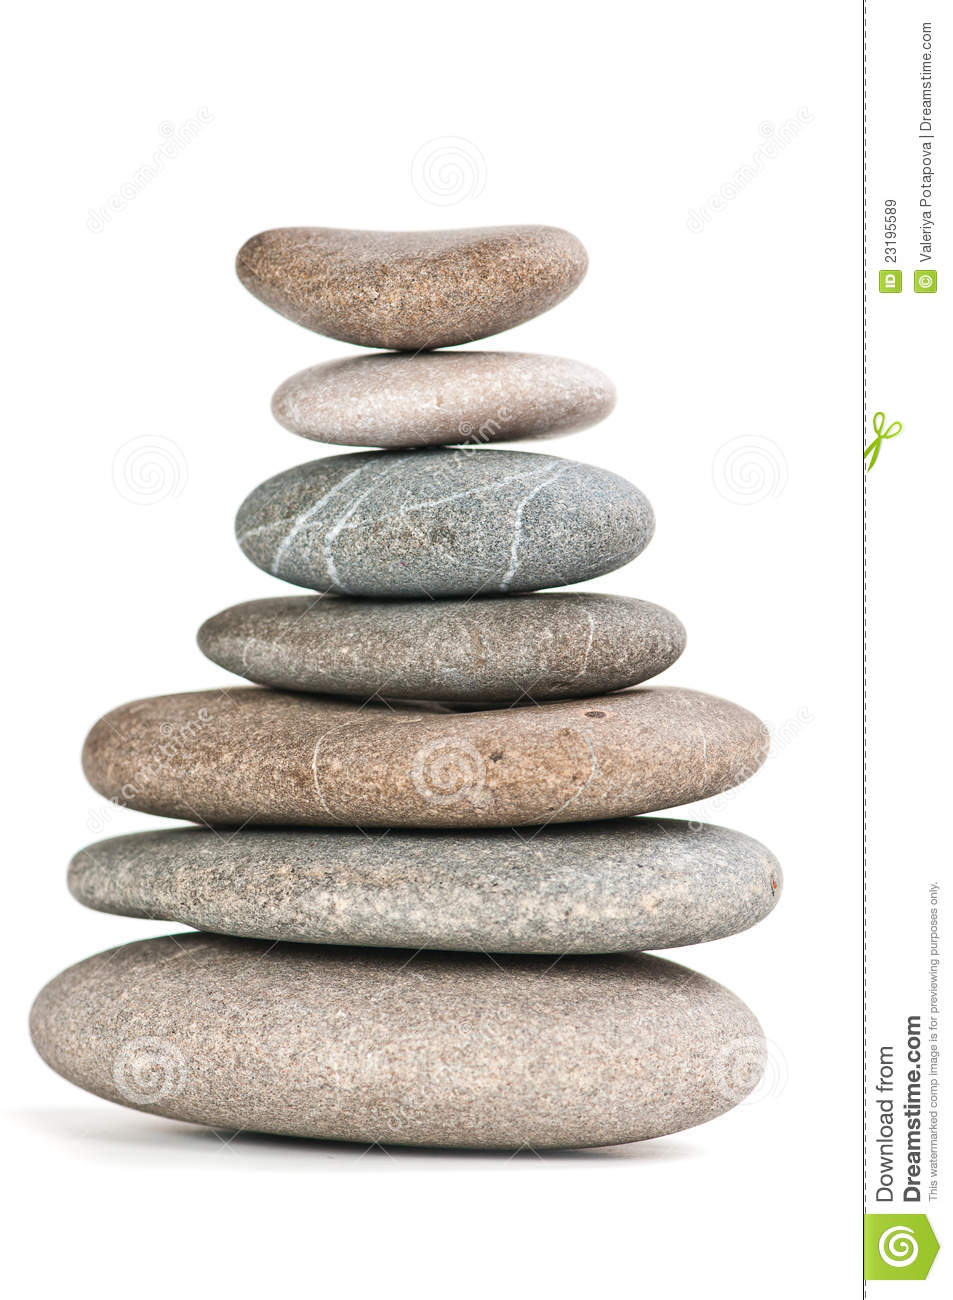 Pile Of Rocks Clipart Stones In Balanced Pile On #wf5qMh.